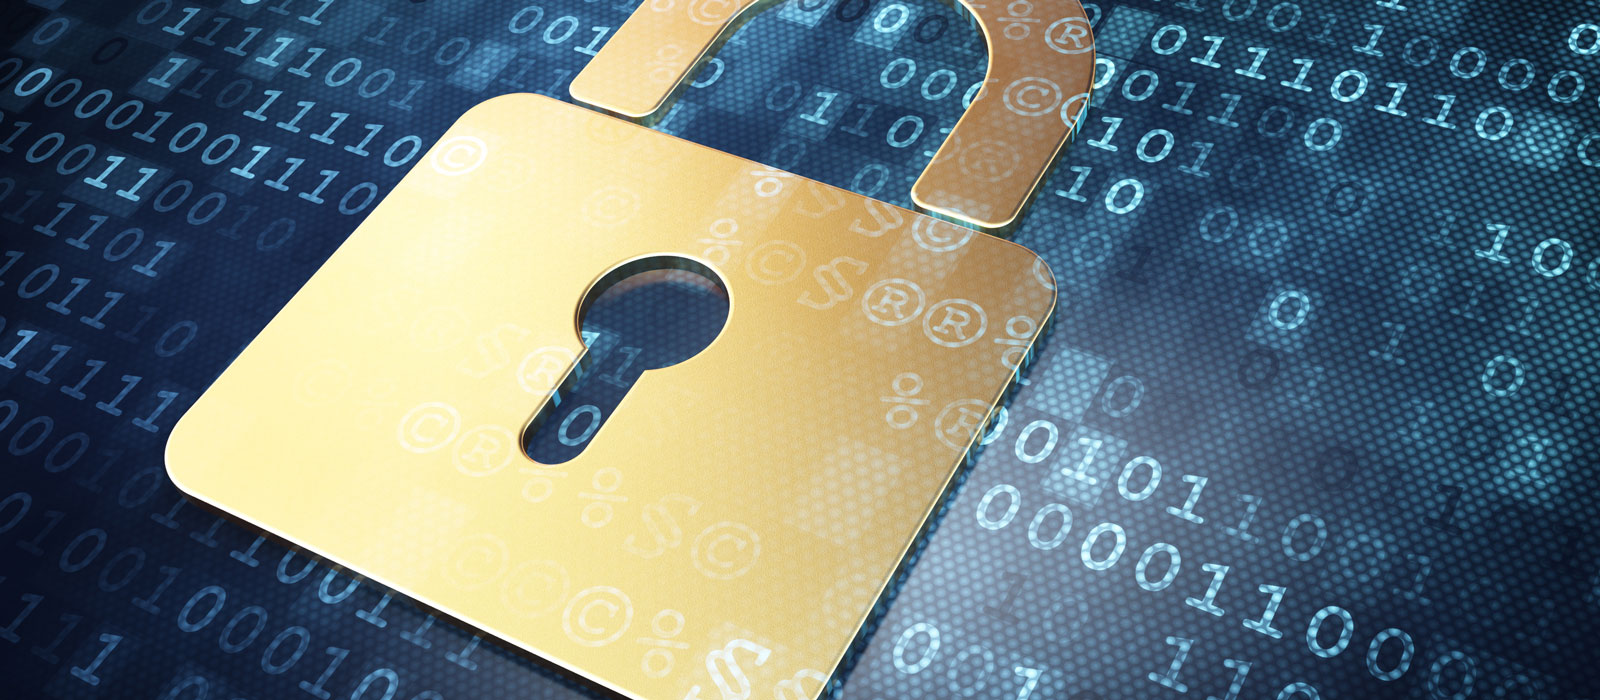 Data security: get ready for the General Data Protection Regulation